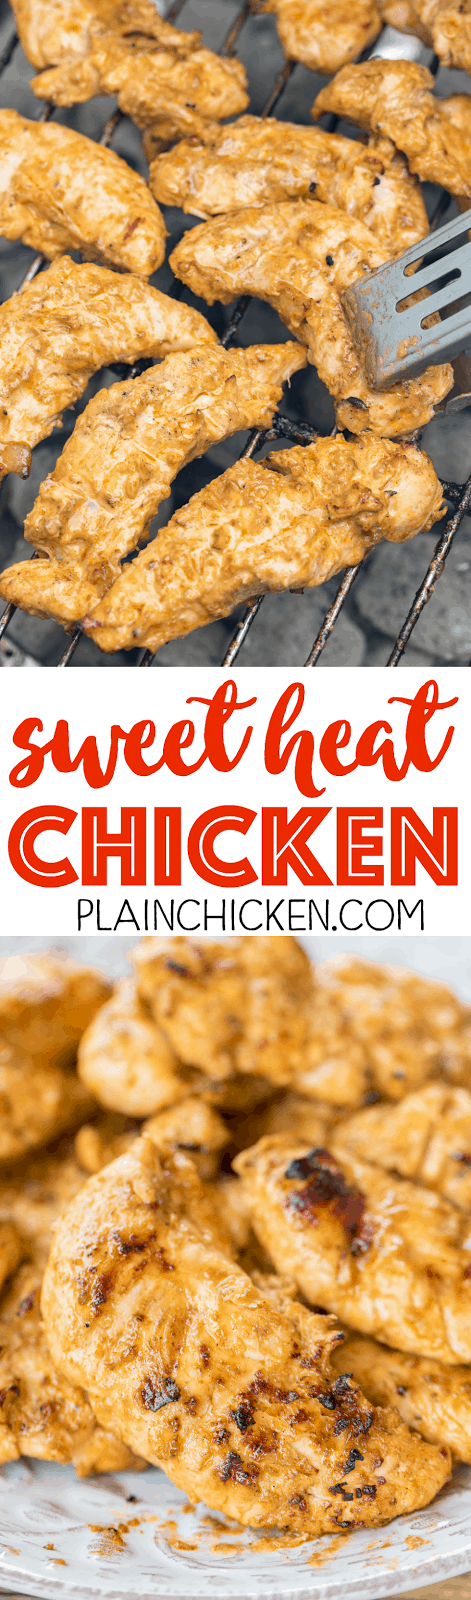 Sweet Heat Chicken - hot sauce and brown sugar marinated chicken that is totally ADDICTING! This is the perfect combination of sweet and spicy! Hot sauce, vinegar, olive oil, onion, garlic, Worcestershire, brown sugar. AMAZING flavor combination! We ate this twice in one week! SO good!